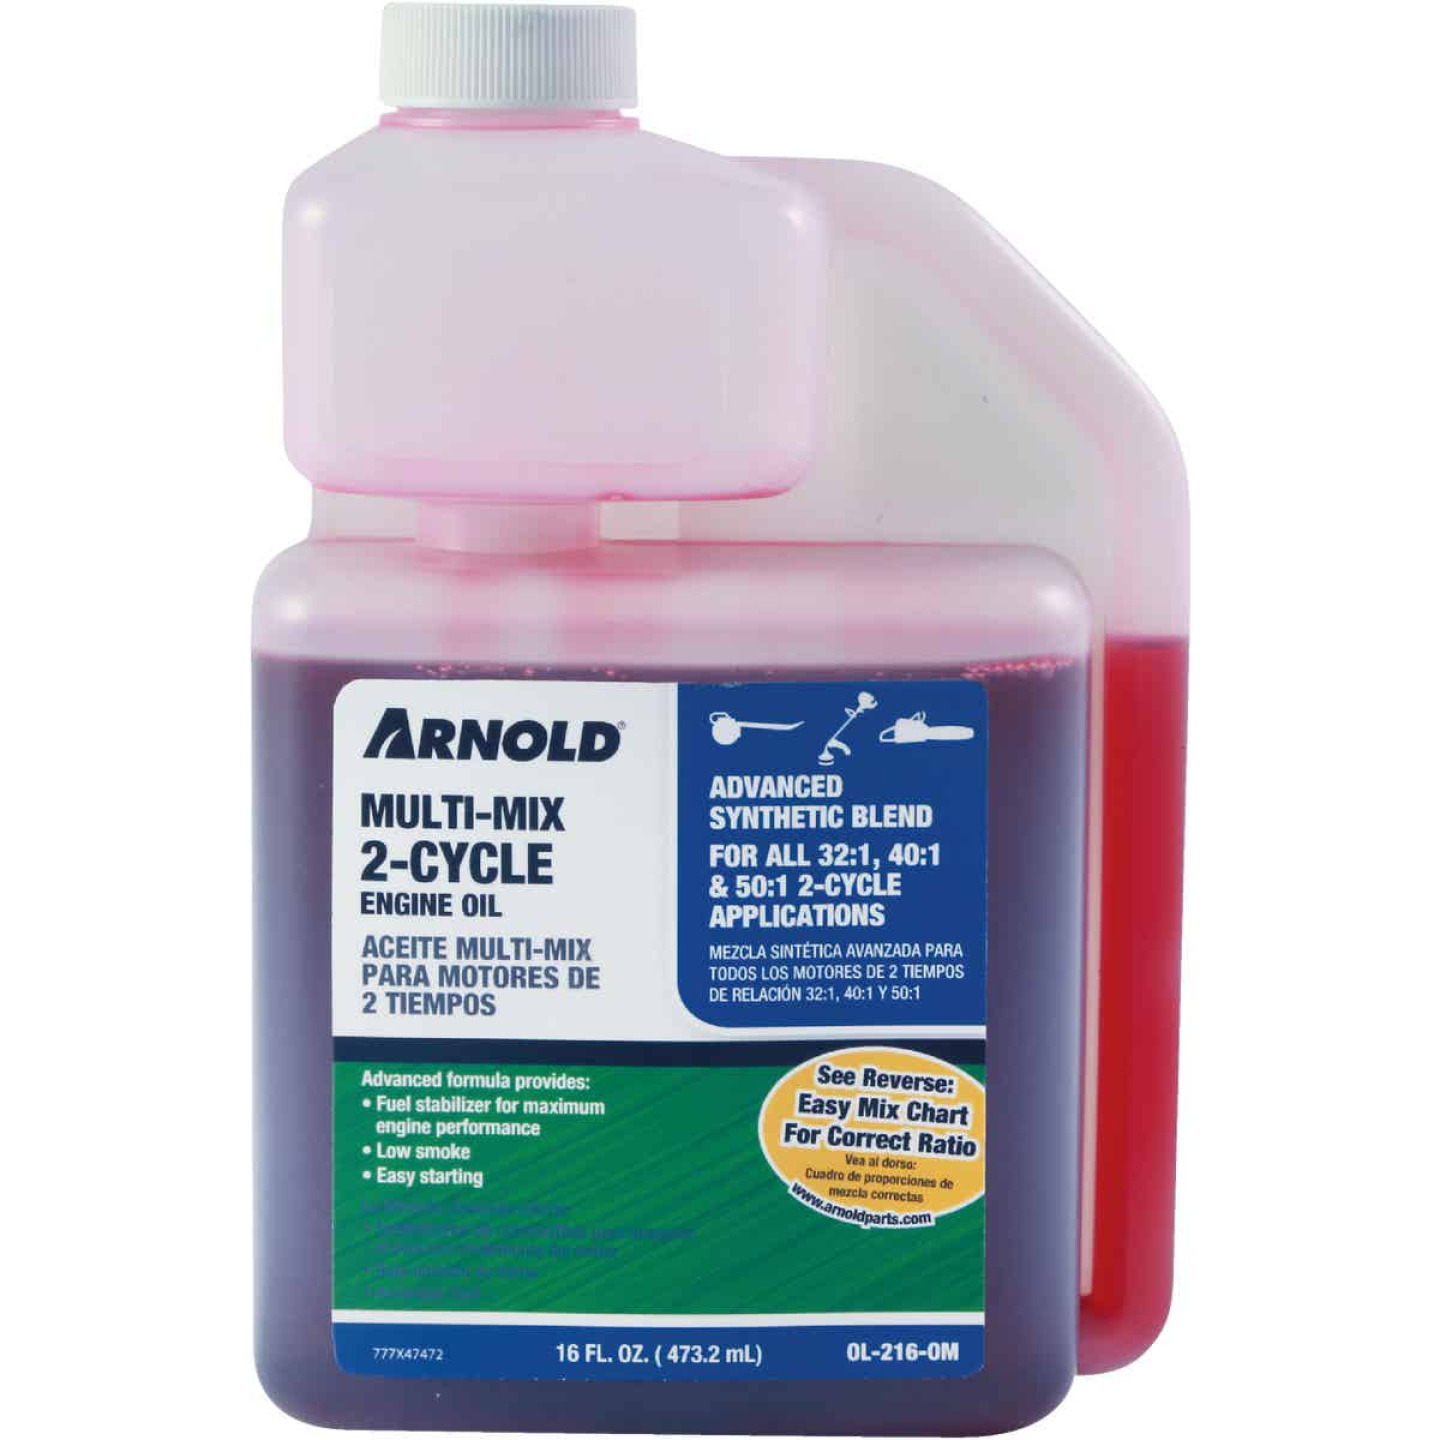 Arnold 16 Oz. Synthetic Blend Multi-Mix 2-Cycle Motor Oil Image 1